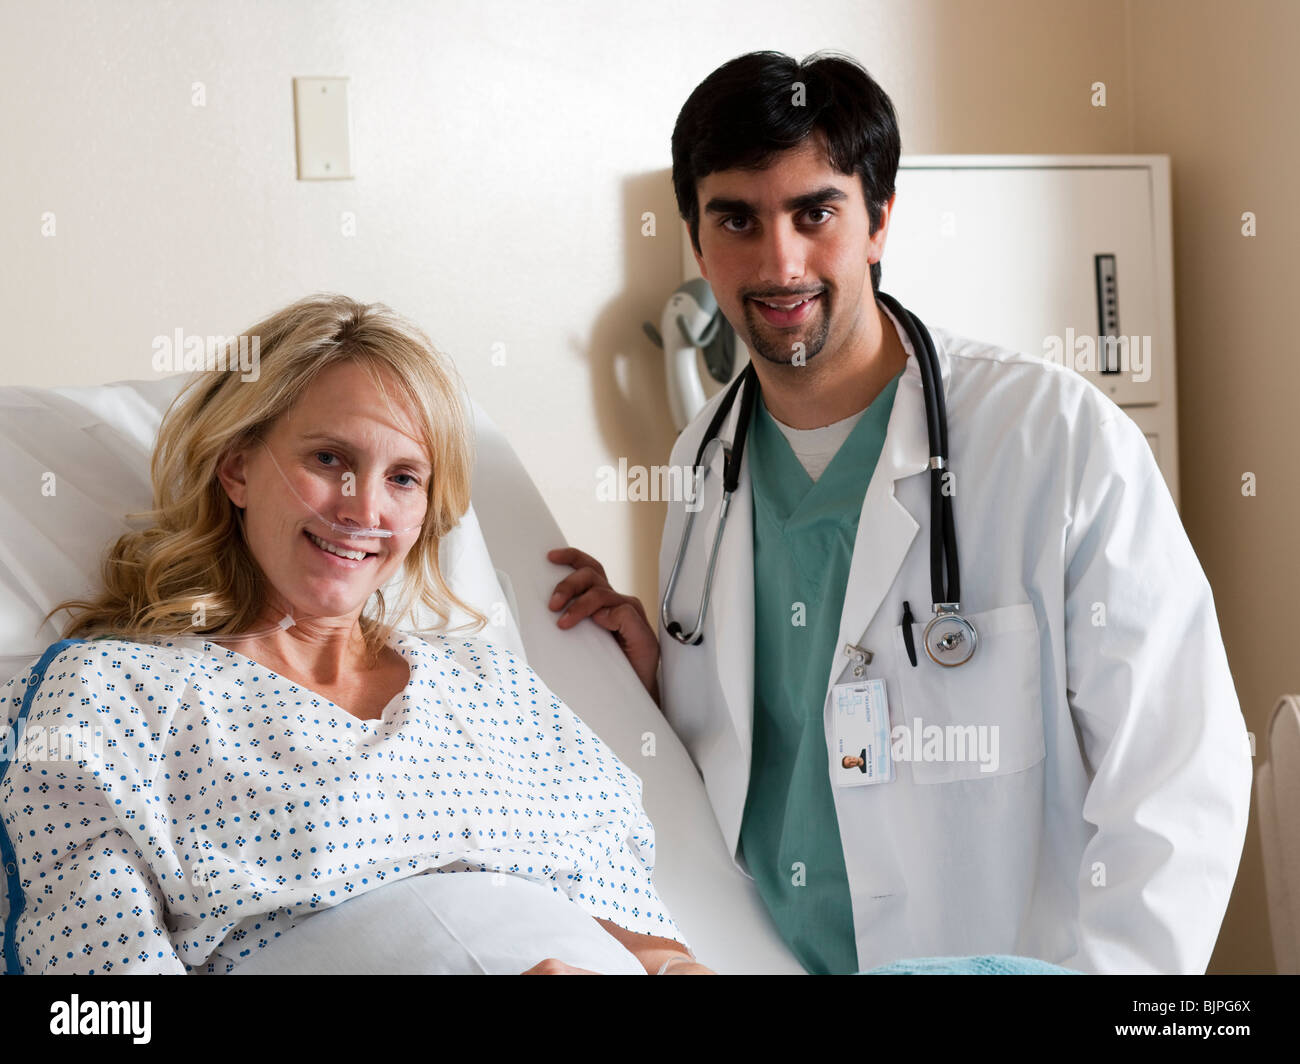 Woman in hospital bed - Stock Image